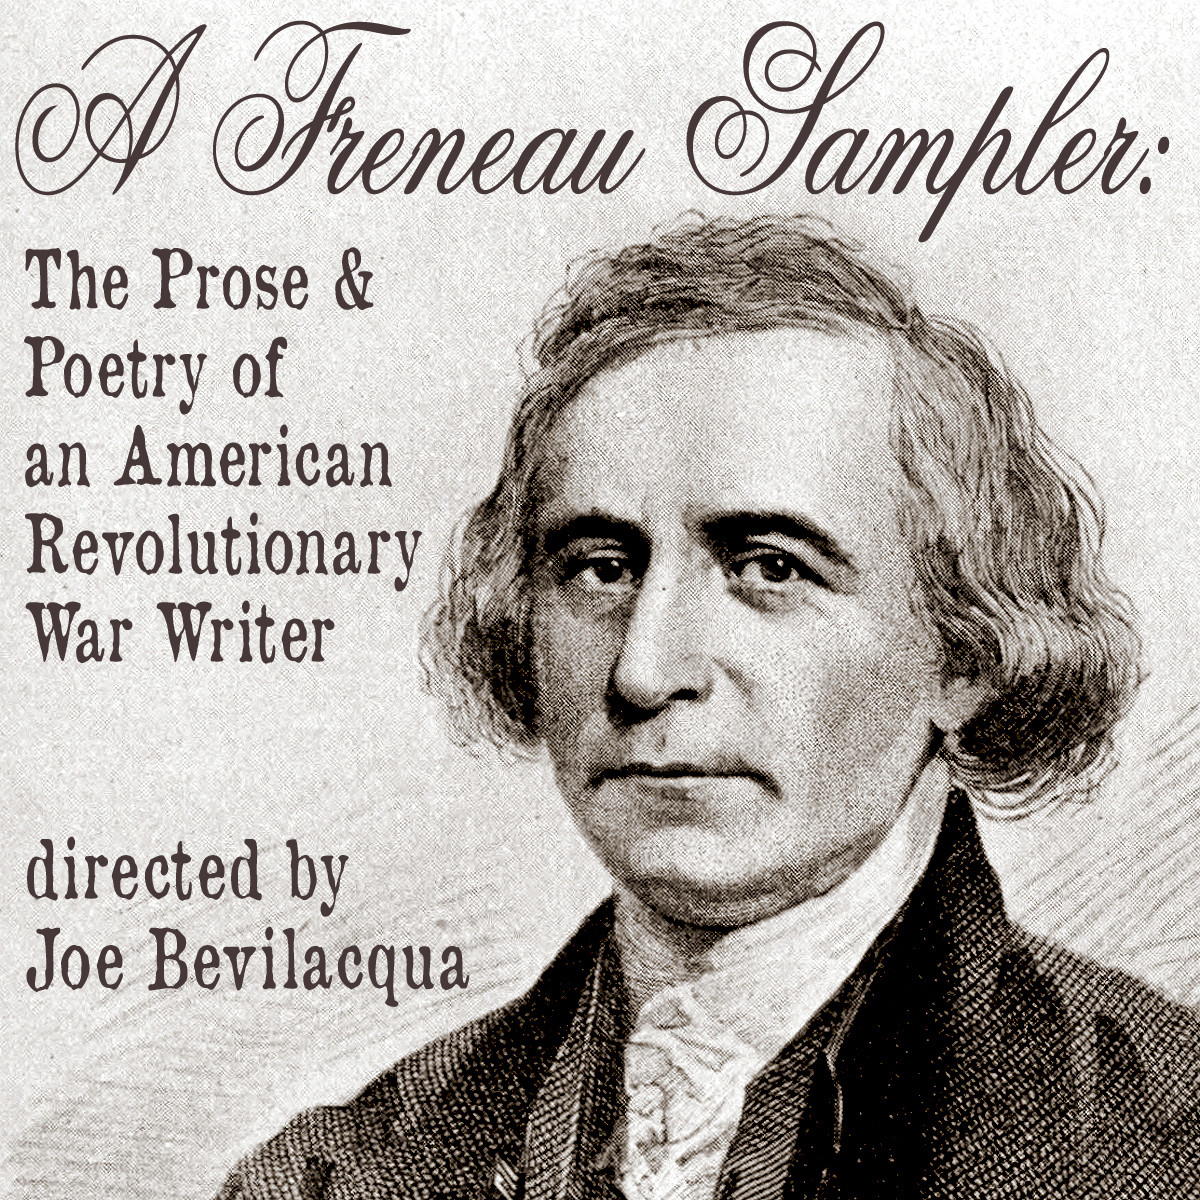 Printable A Freneau Sampler: The Prose and Poetry of Revolutionary War Writer Philip Freneau Audiobook Cover Art